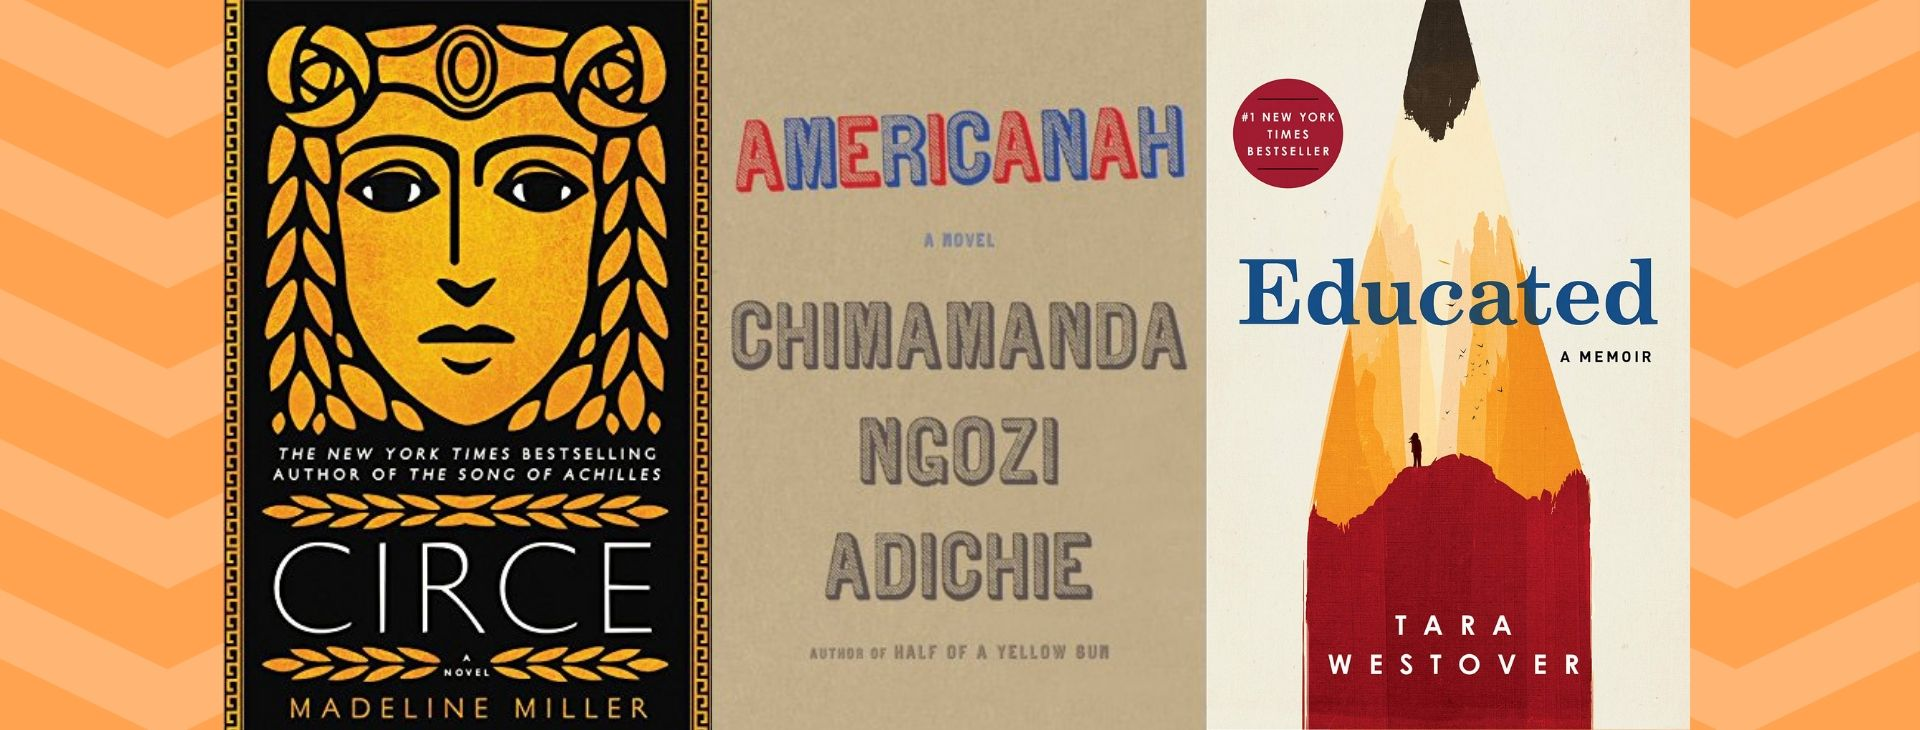 circe, americanah, educated